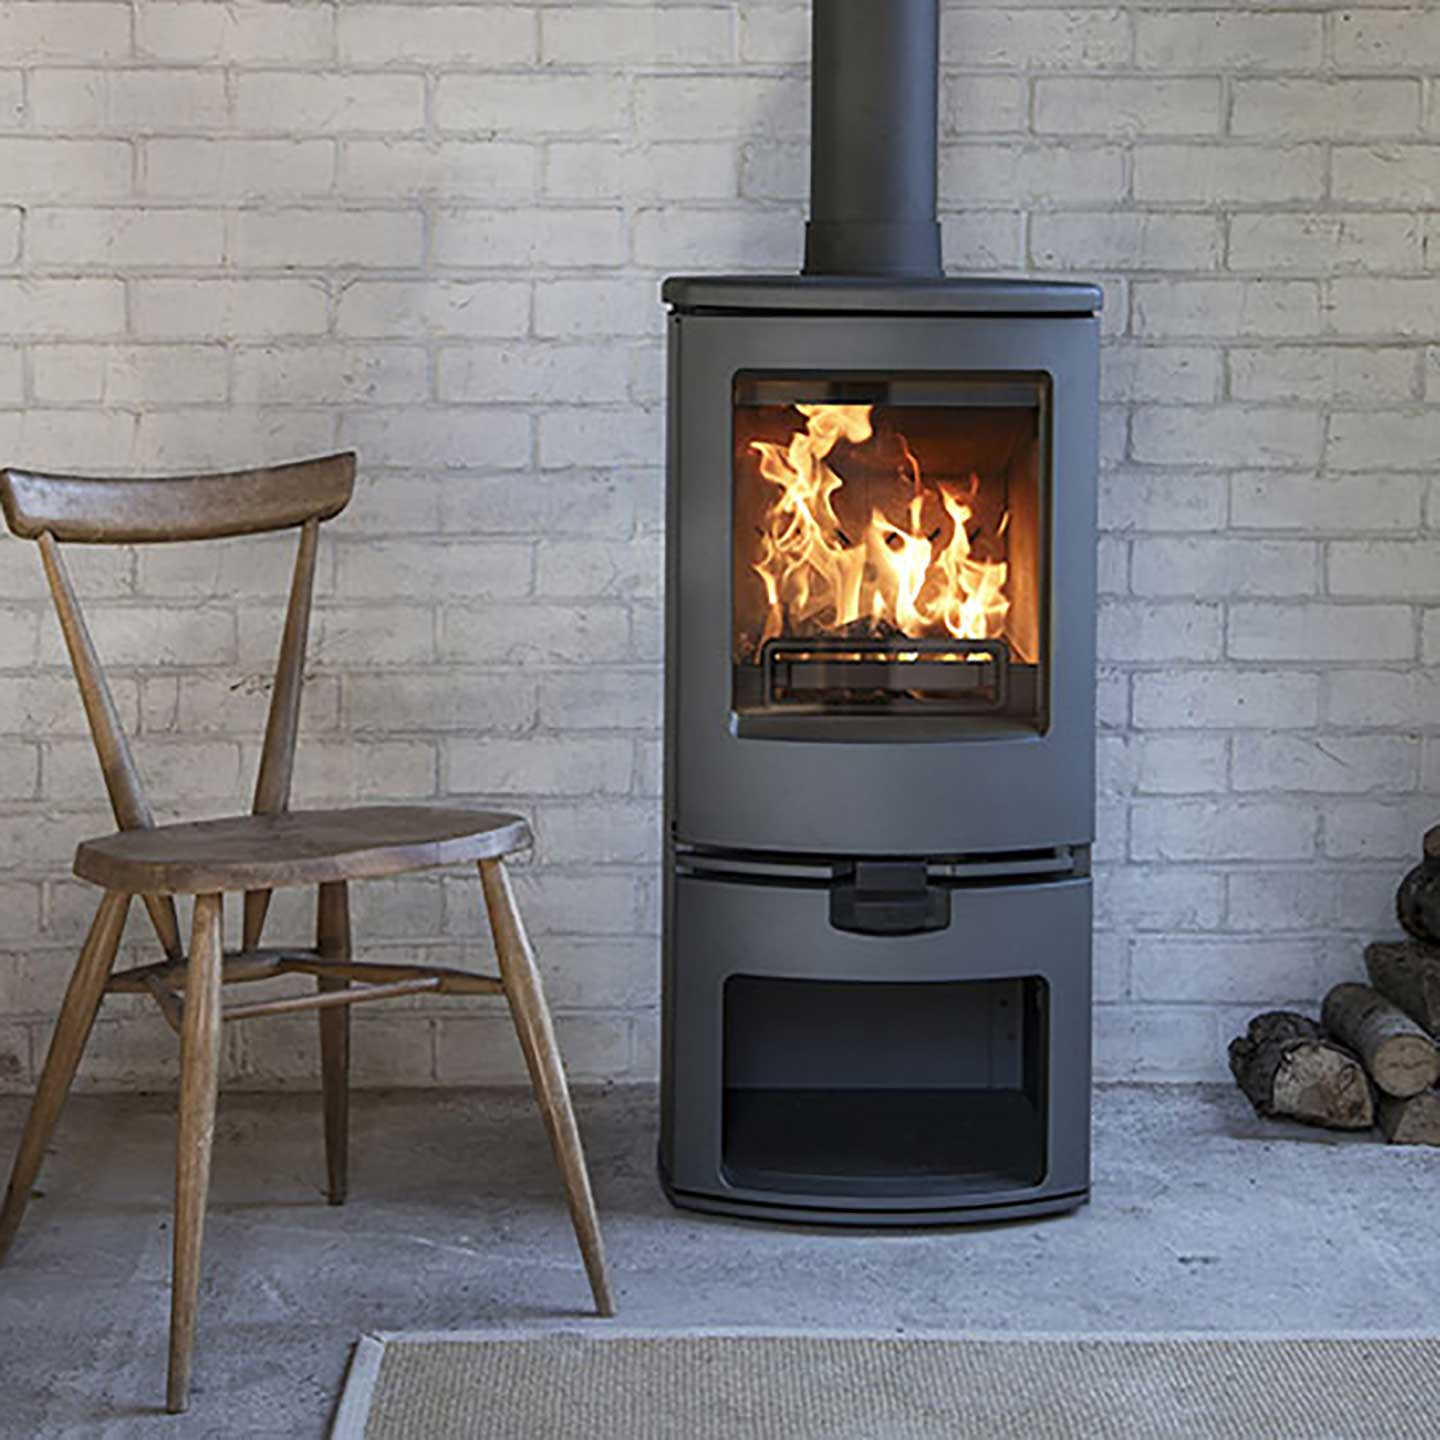 Charnwood Arc 5 Store Stand Multi Fuel Stove Approved